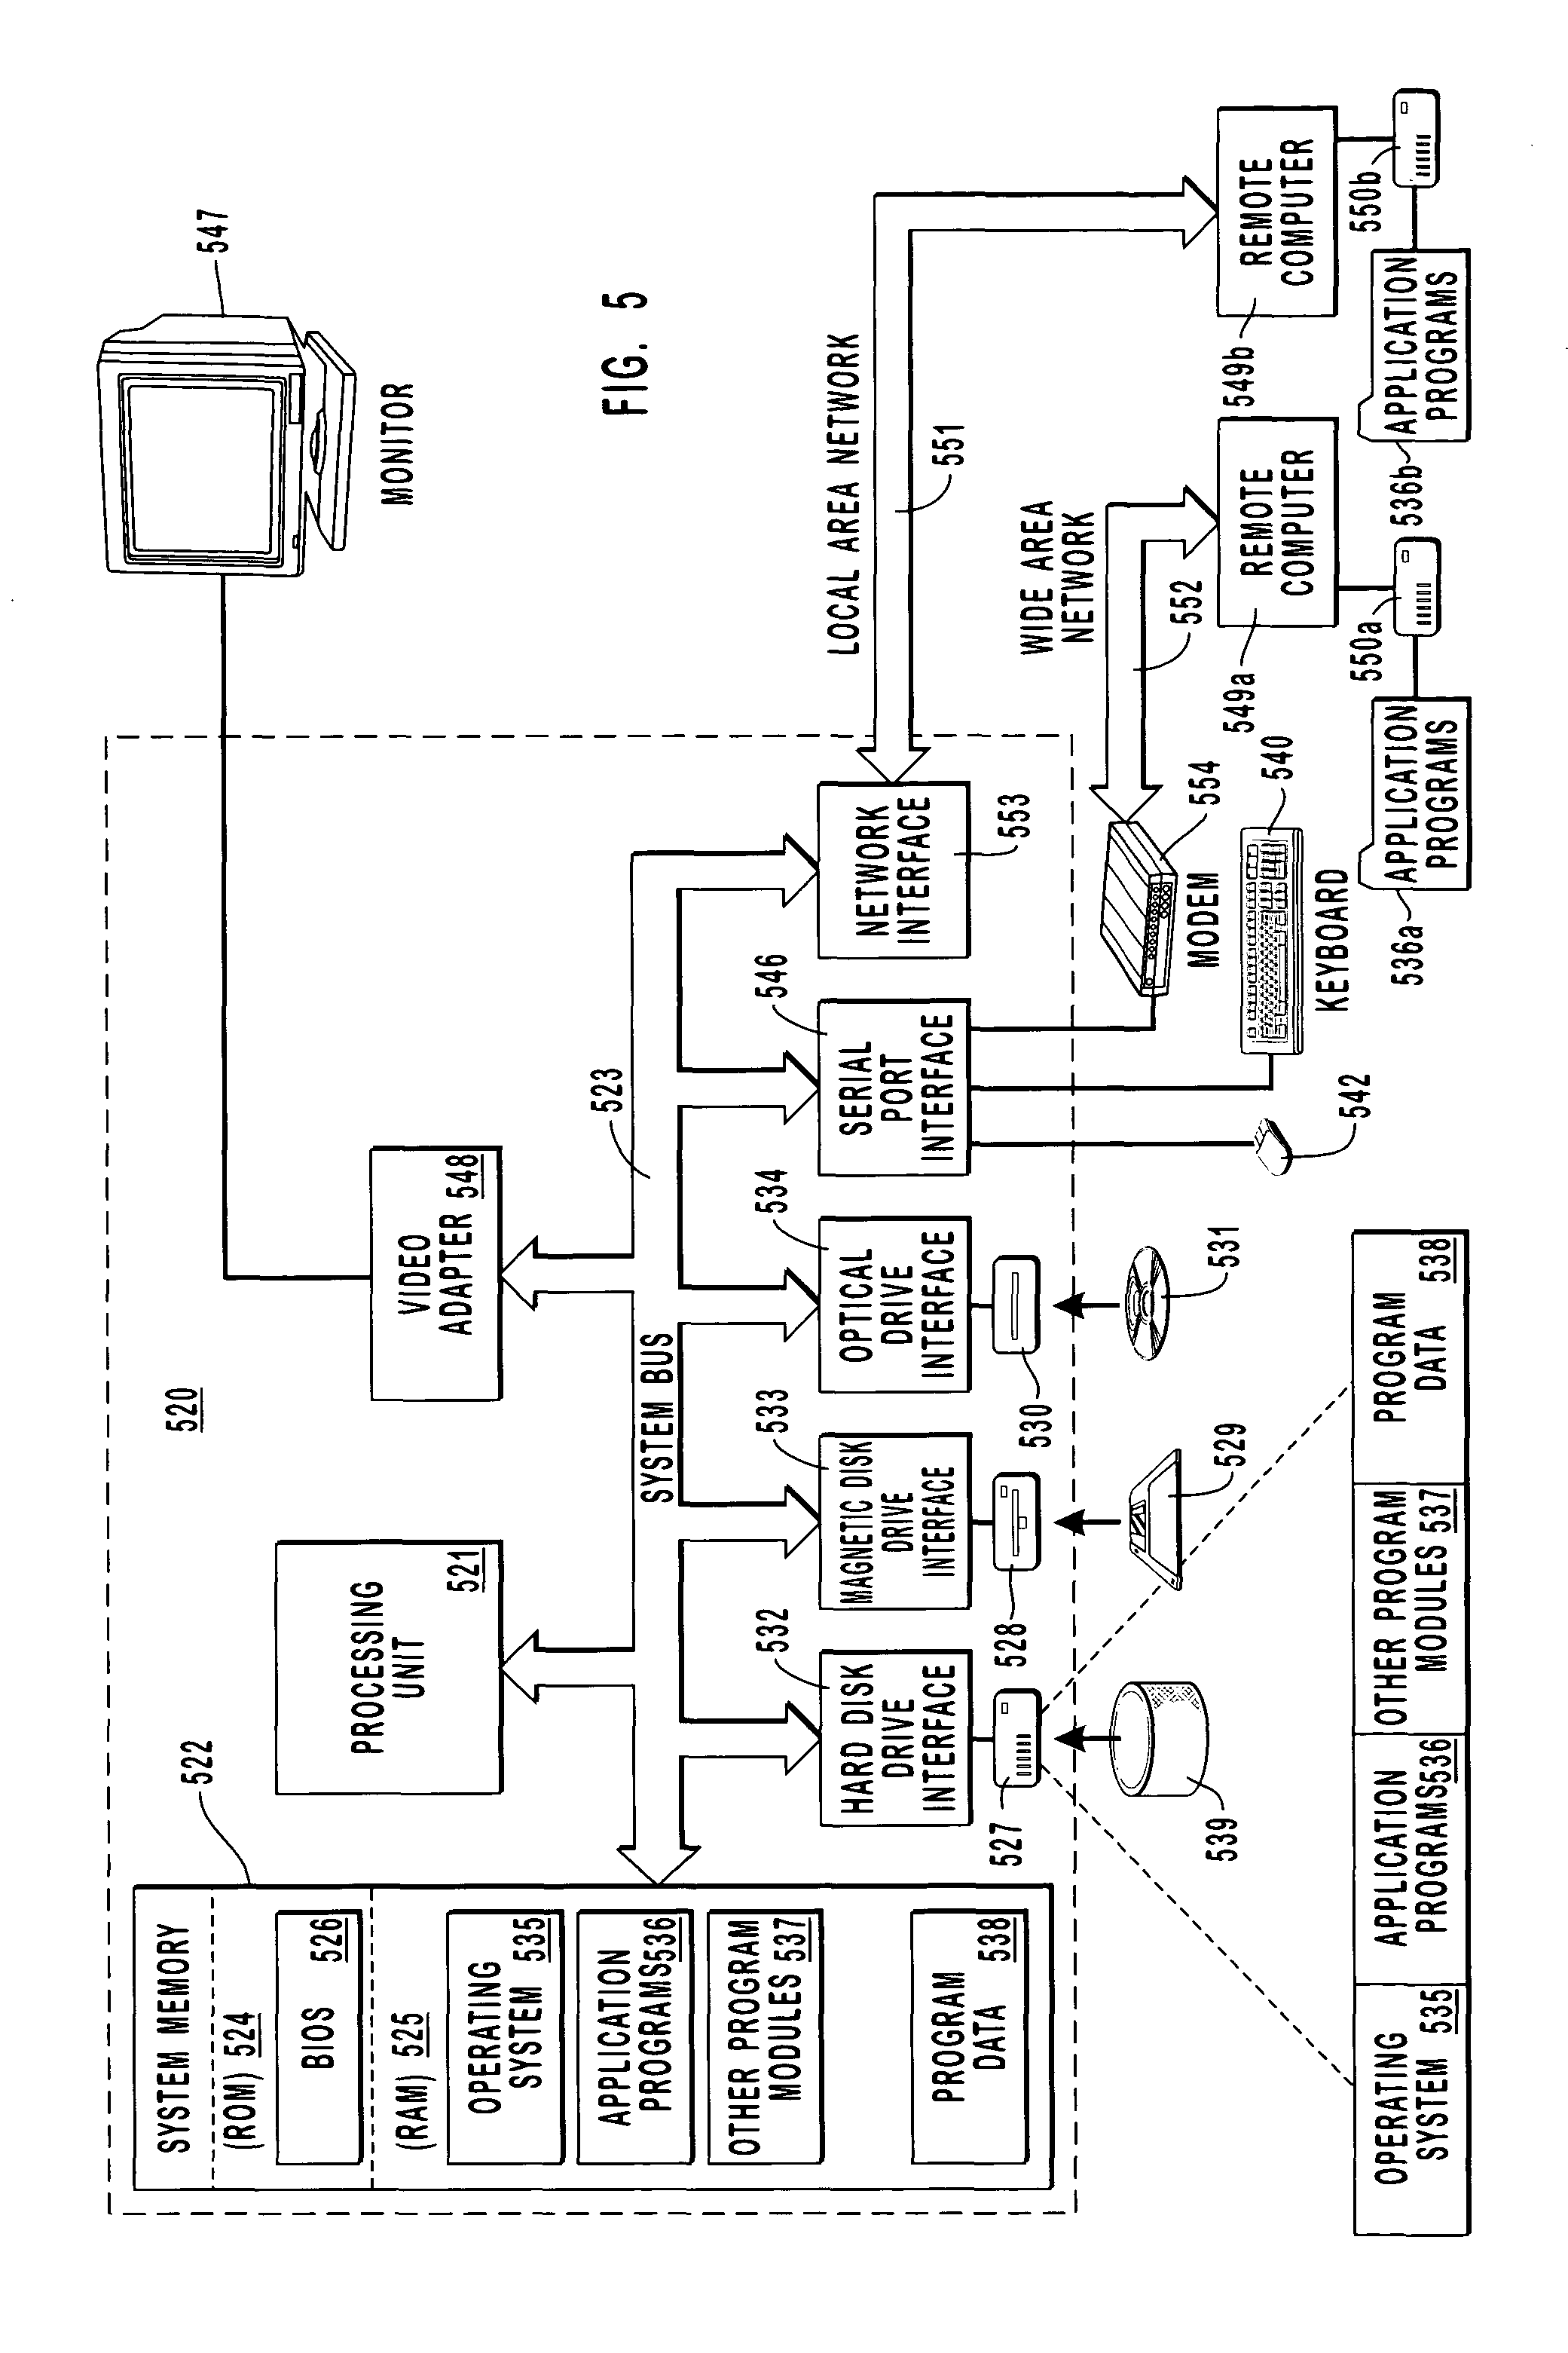 Us20050044244 Providing Scsi Device Access Over A To Usb Wiring Diagram Patent Drawing